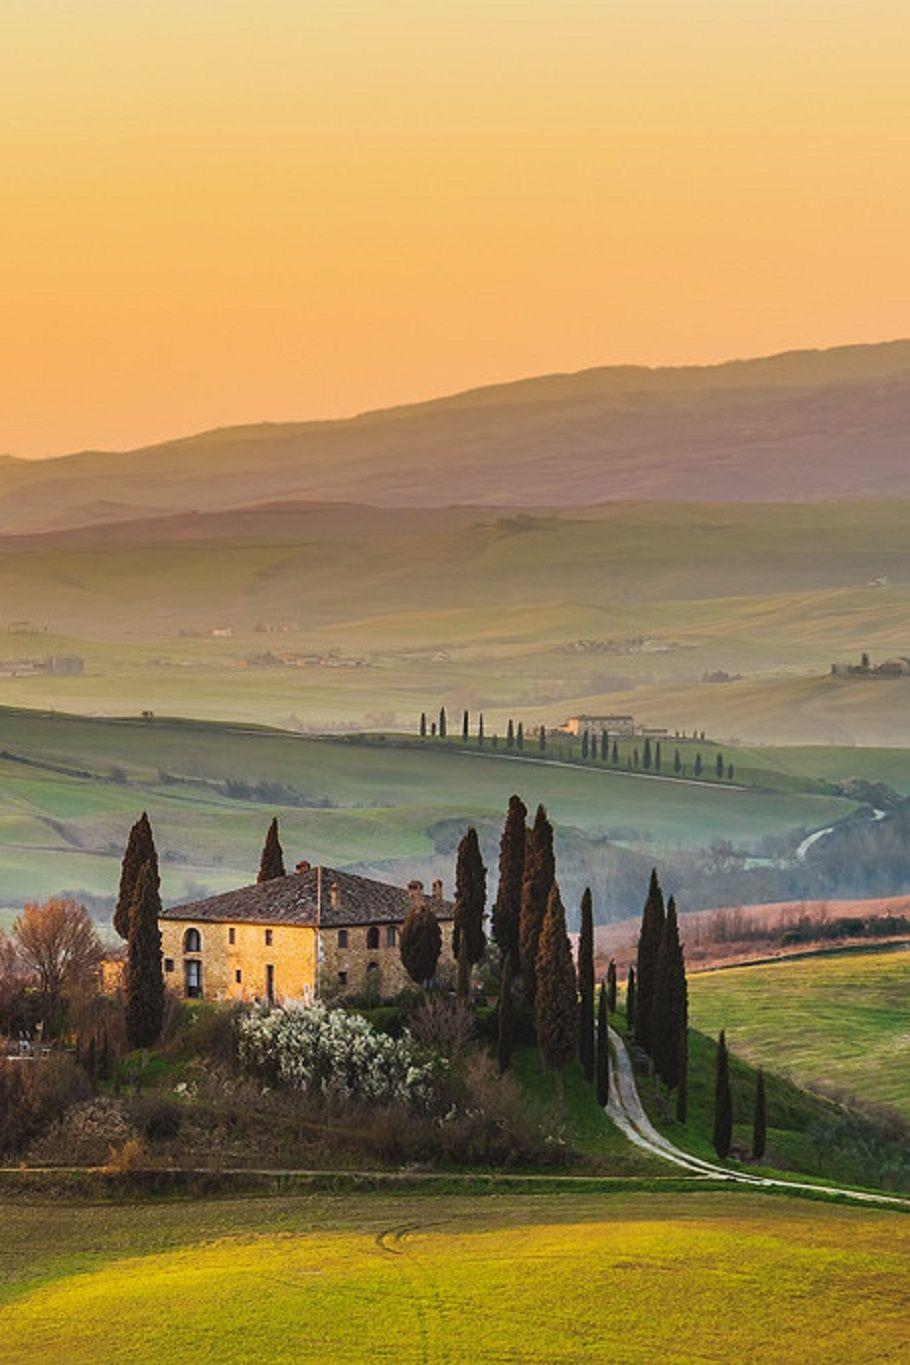 Another amazing picture of the Tuscan Countryside